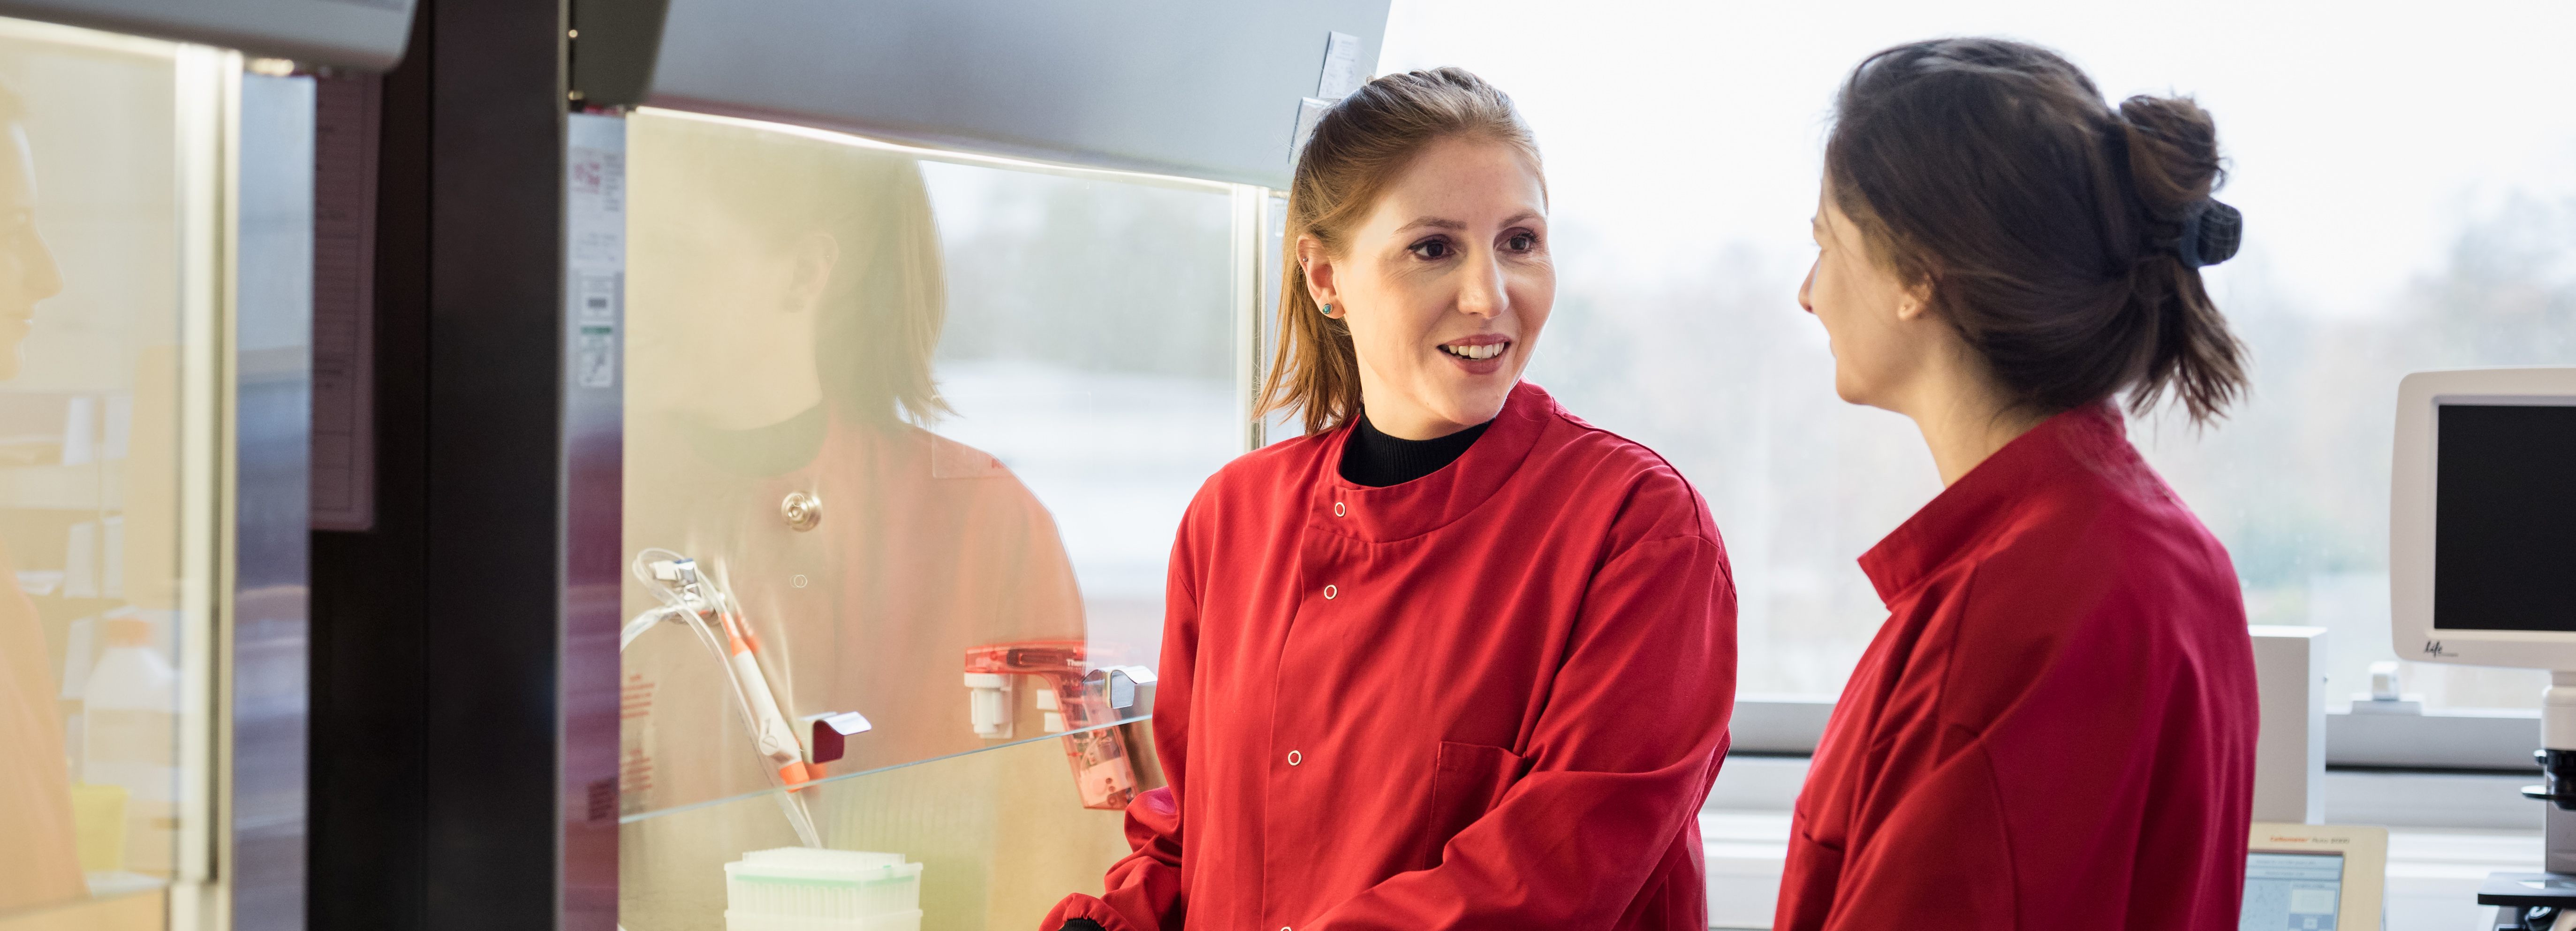 Two women wearing red lab coats talking to each other